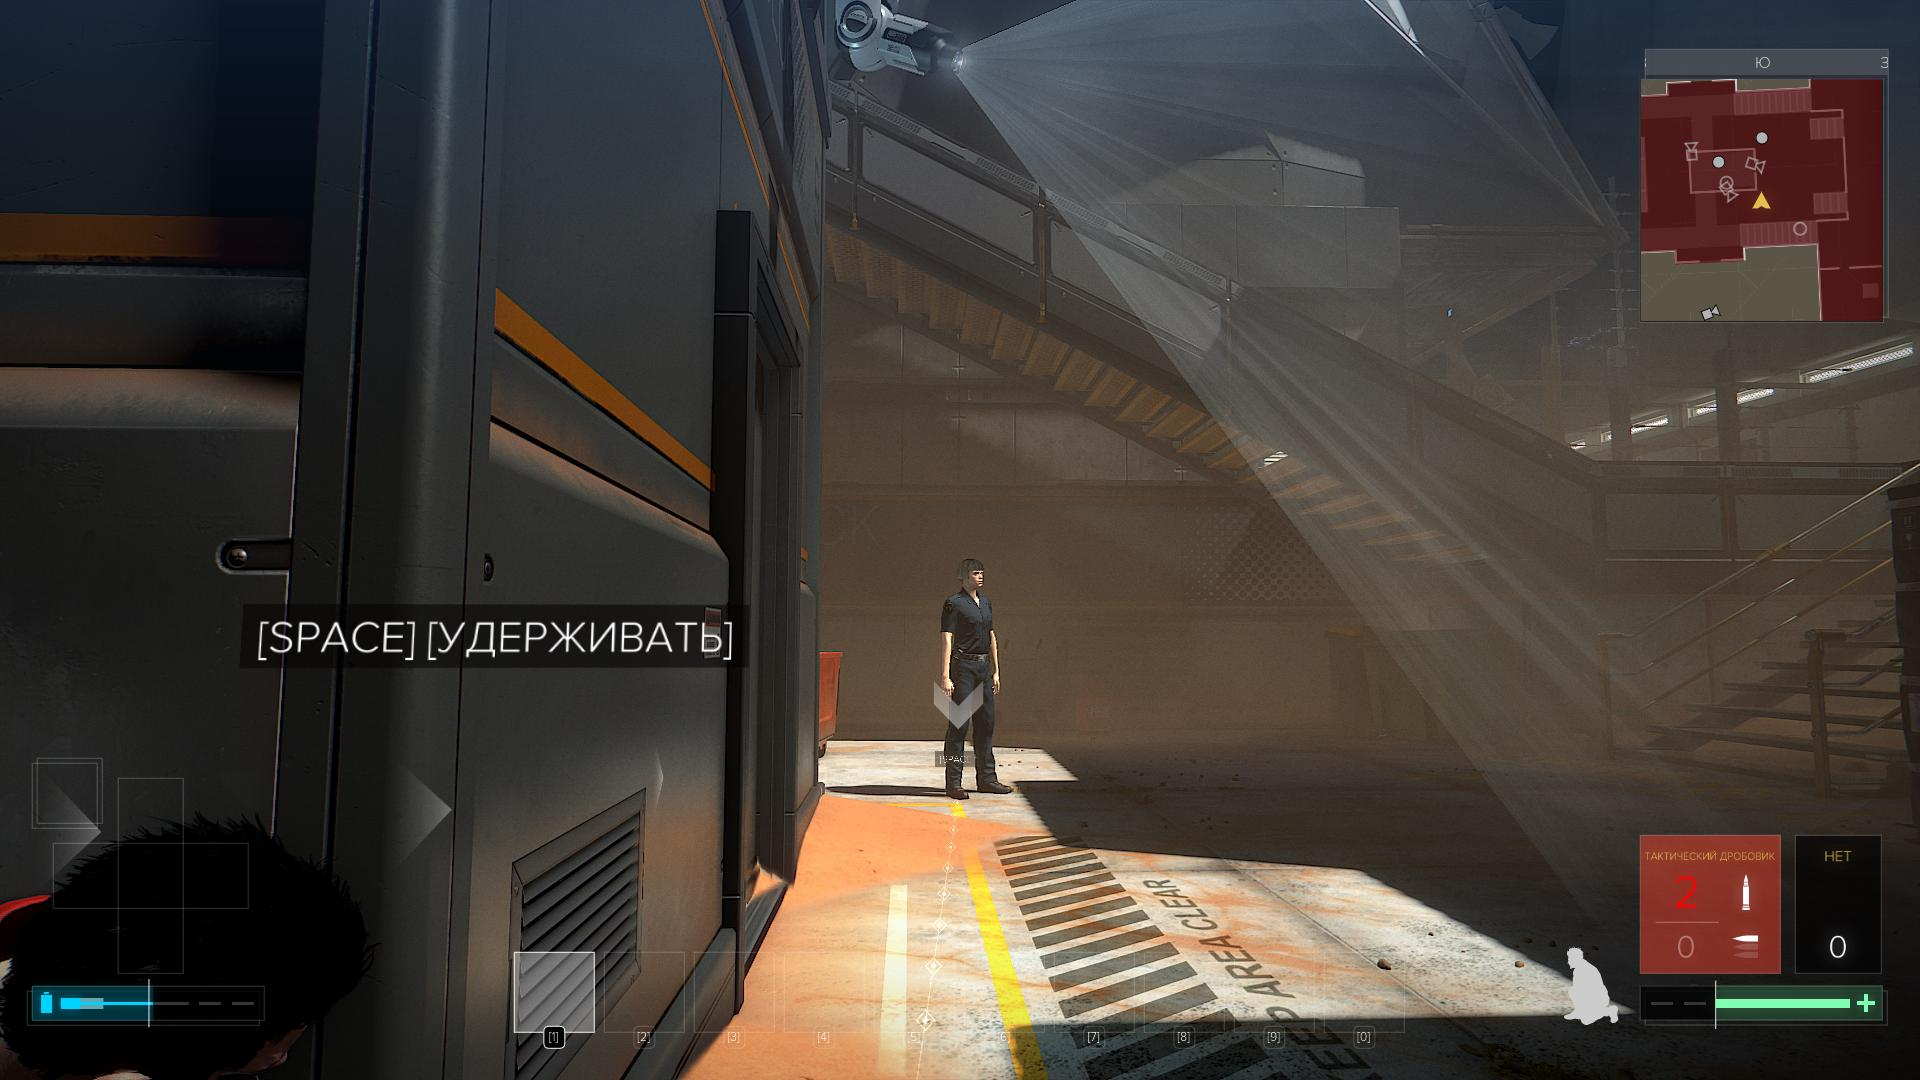 000371.Jpg - Deus Ex: Mankind Divided